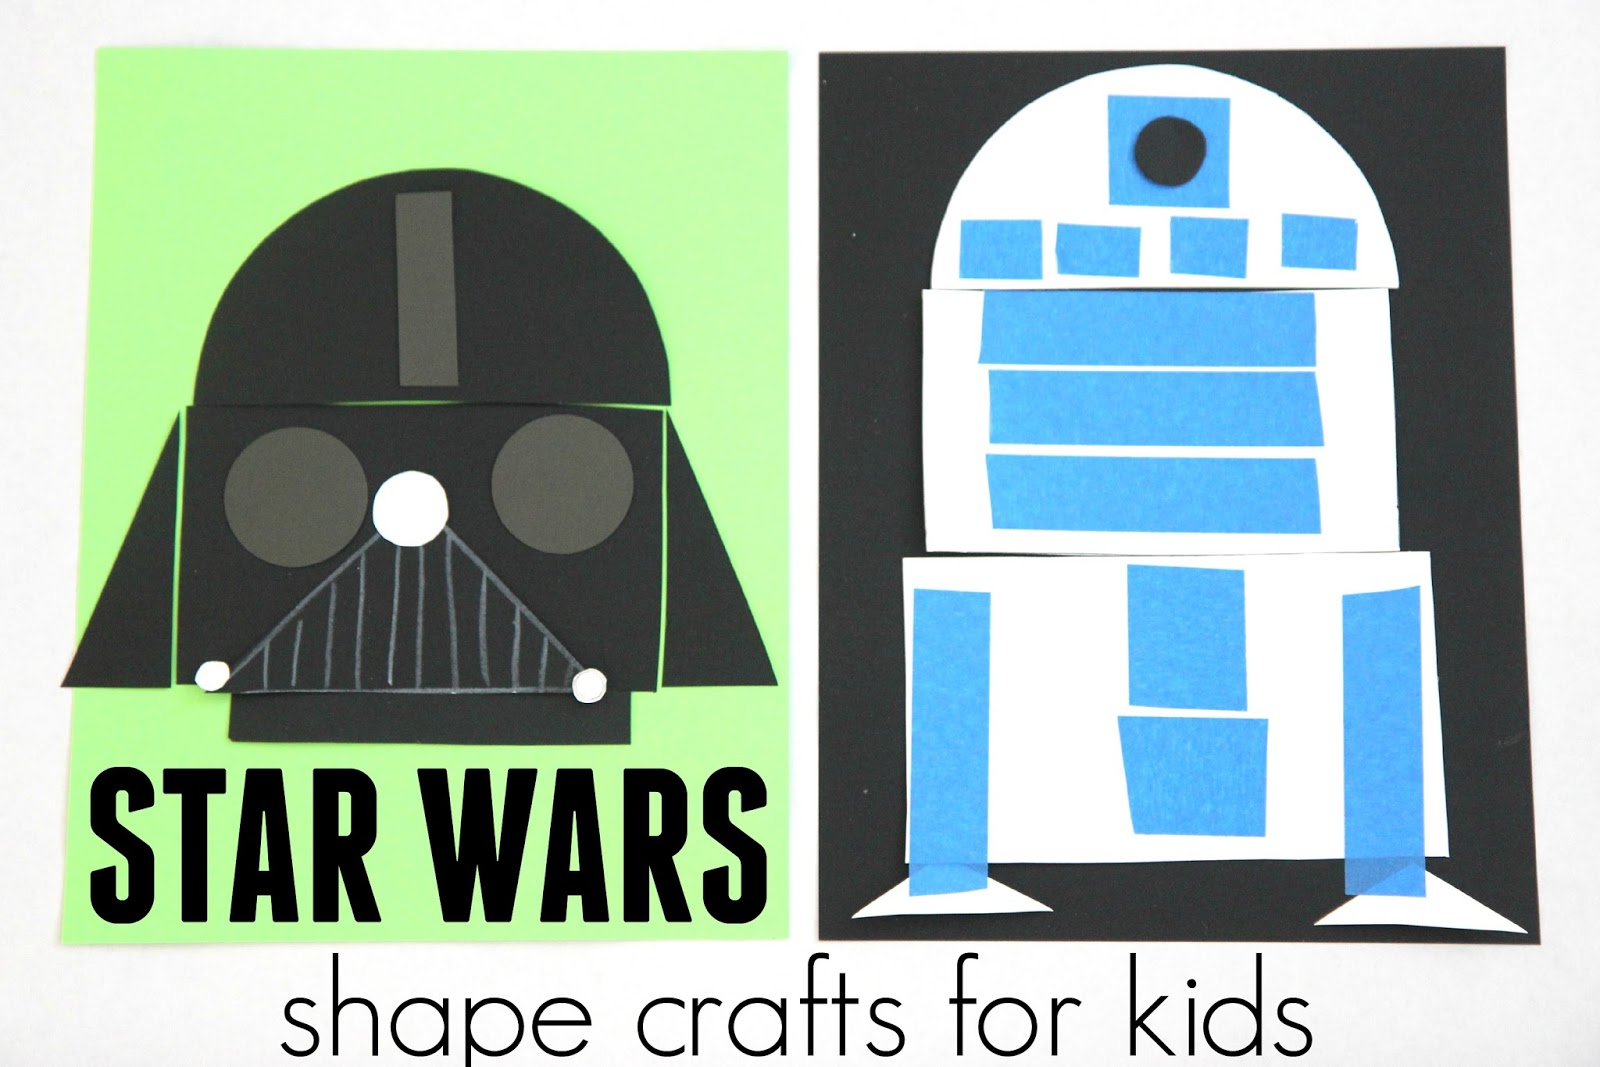 Toddler approved star wars shape crafts and lightsaber for Star wars arts and crafts